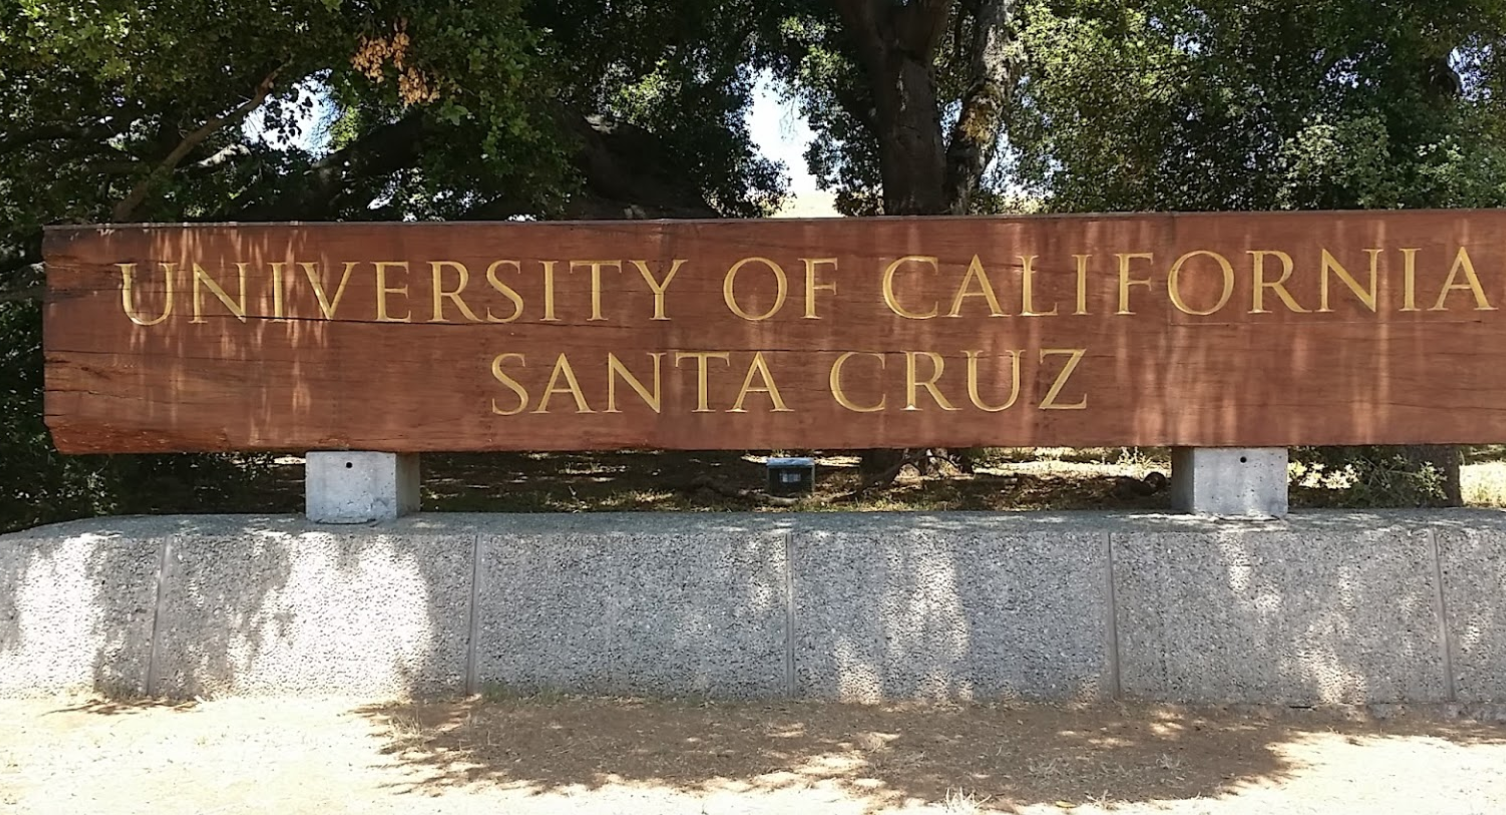 The University of California, Santa Cruz, is seen in a Google Maps Street View image.